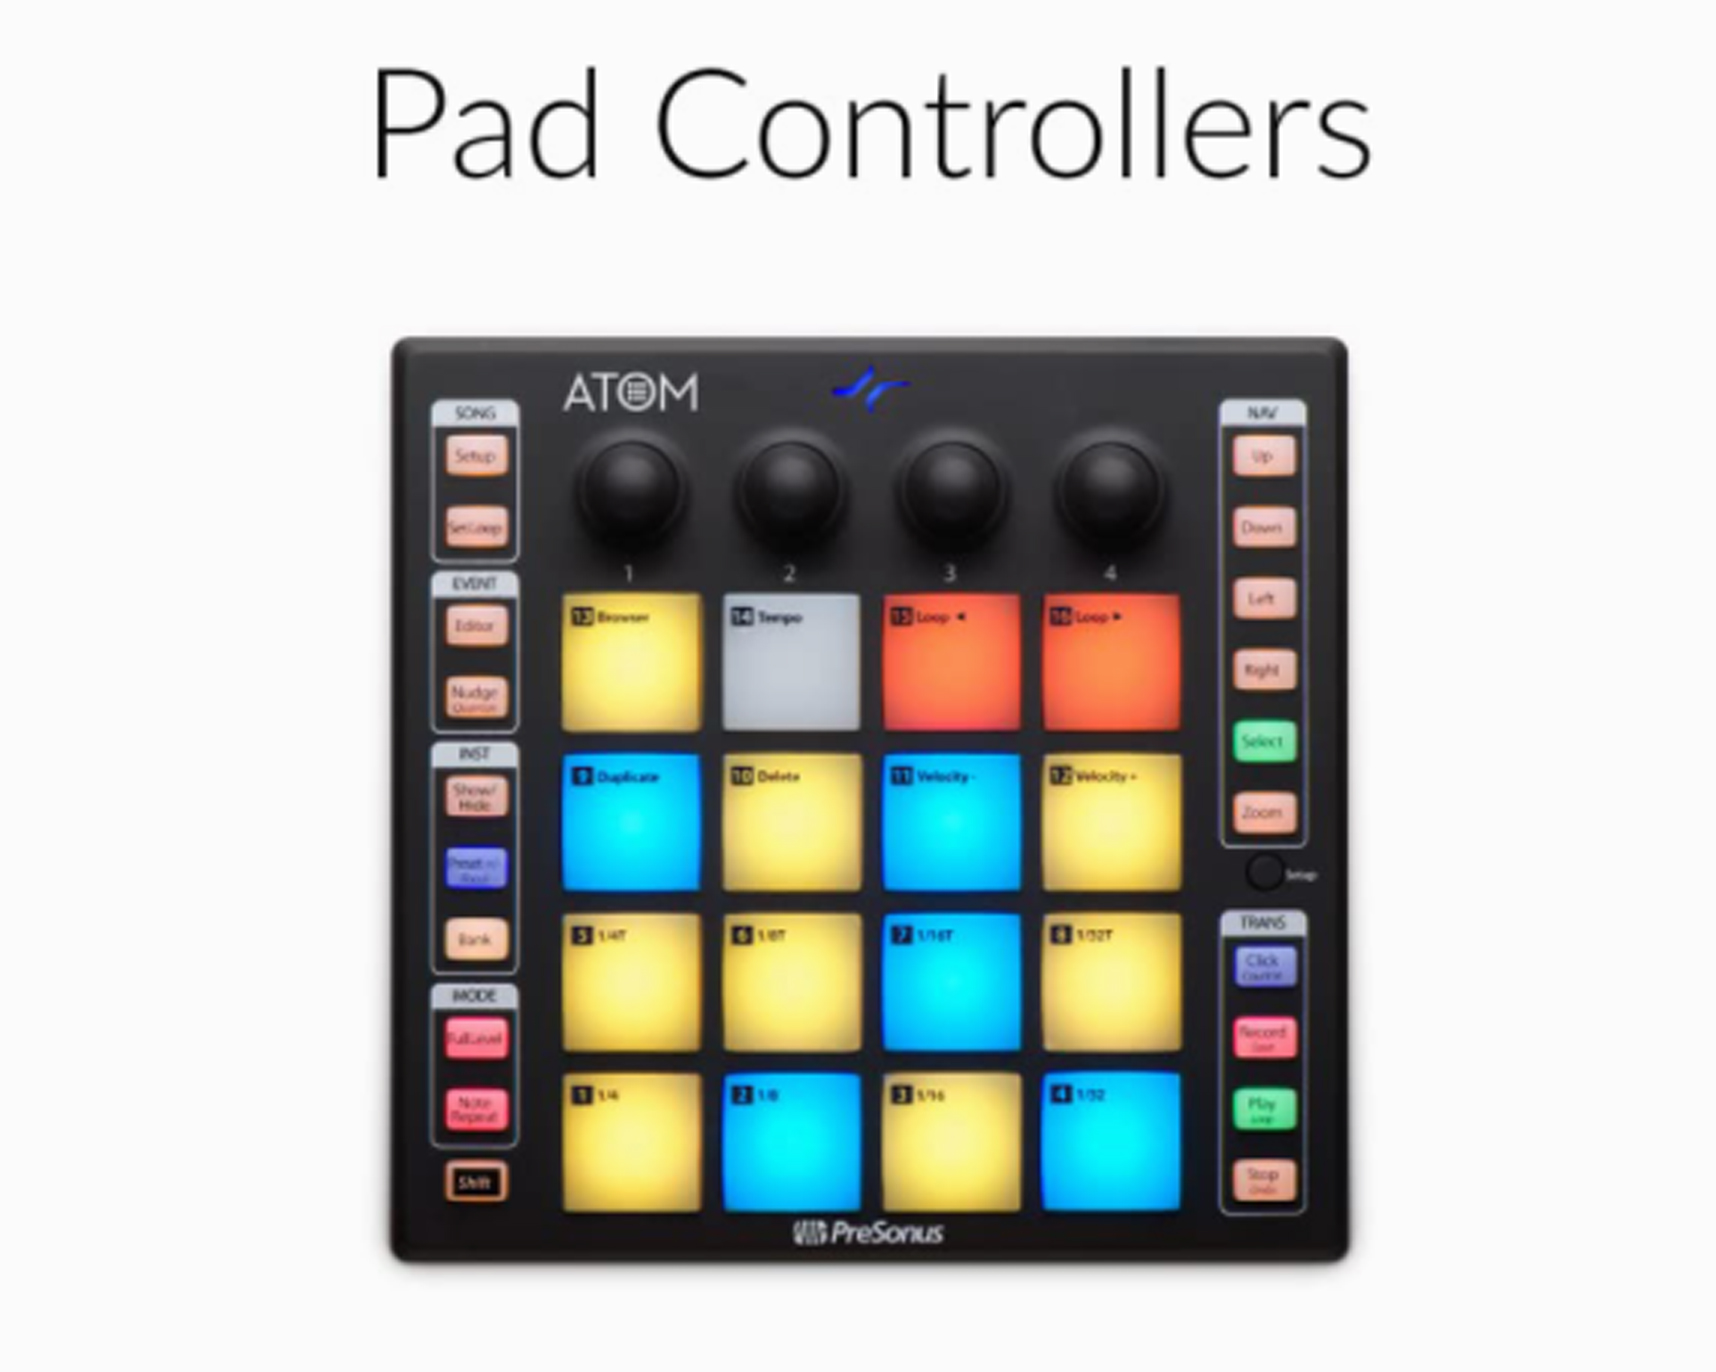 Pad Controllers